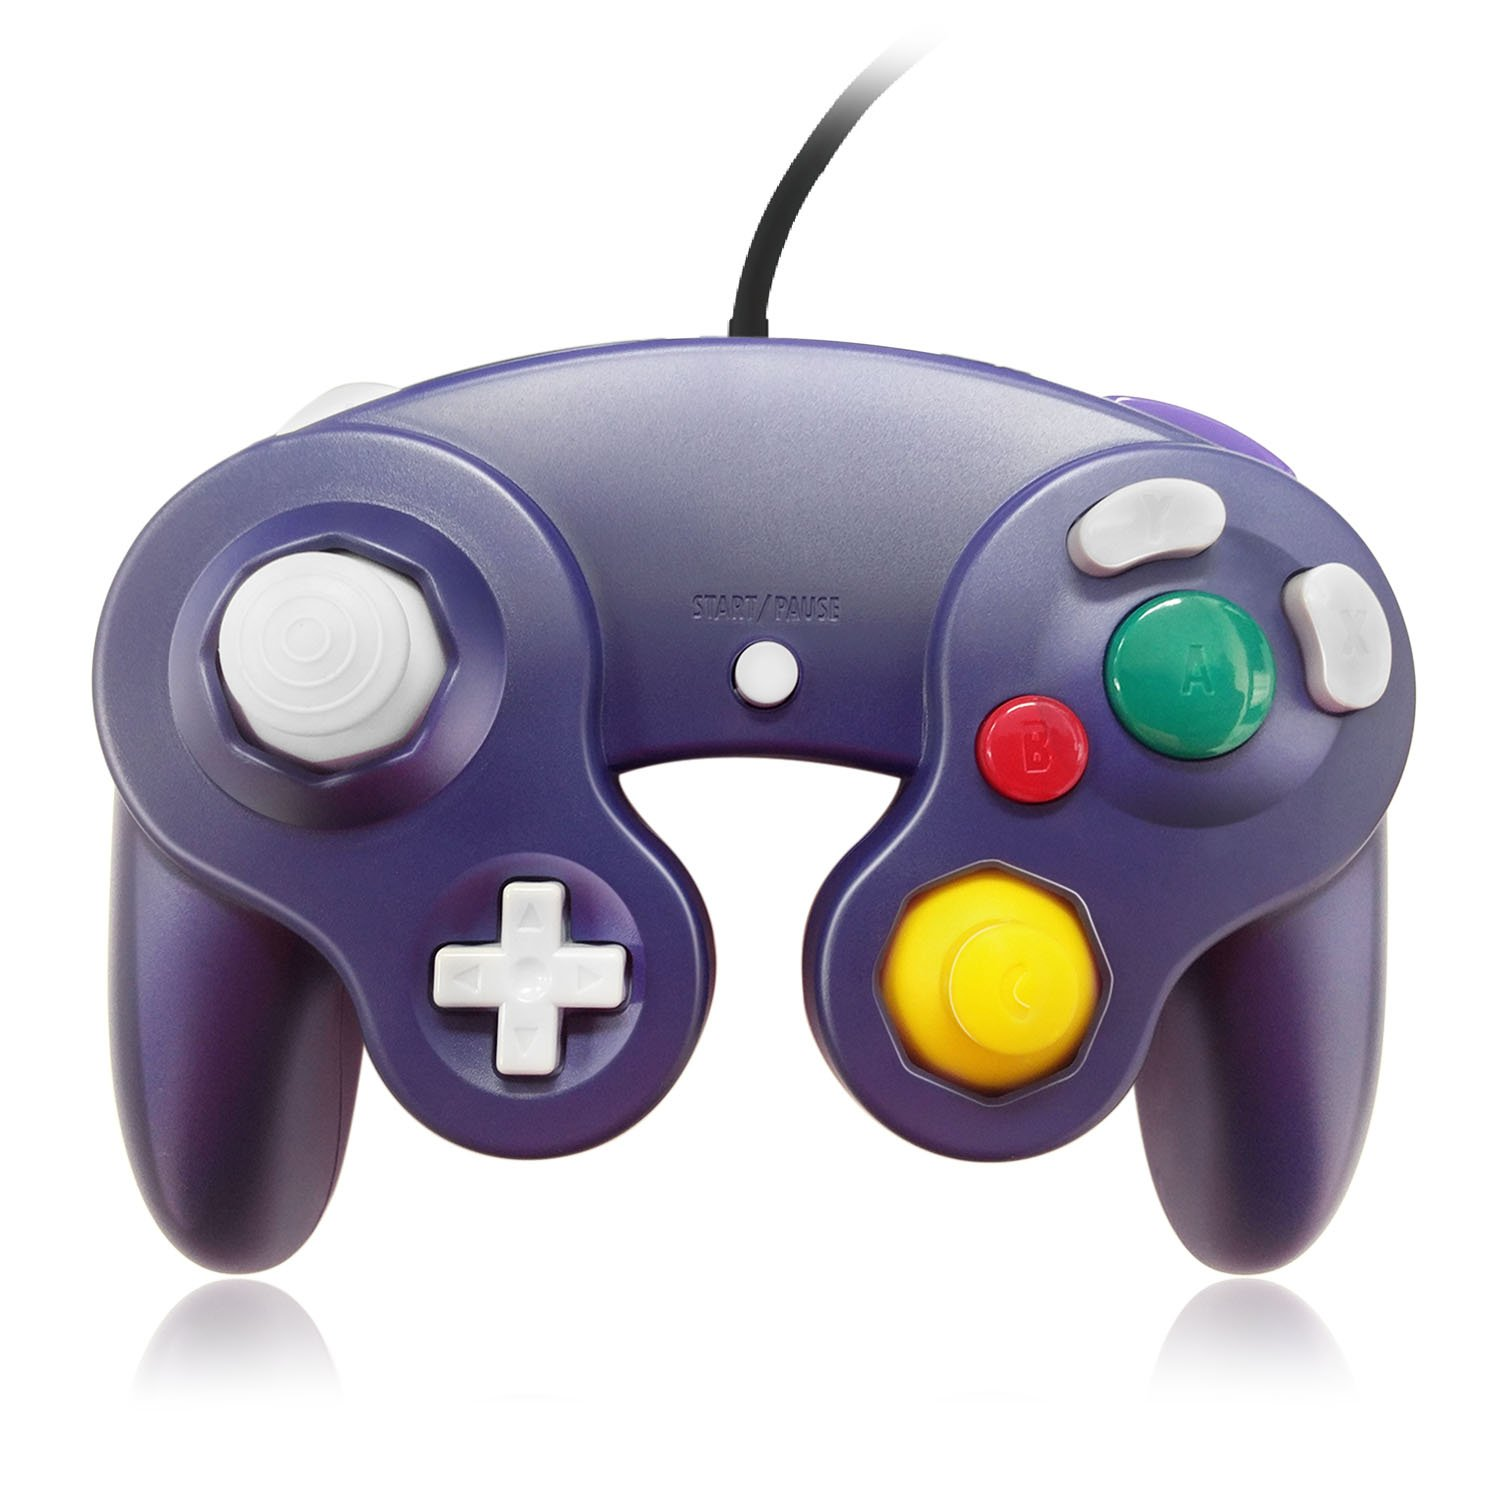 TNP GameCube Controller Nintendo GC and Wii Compatible GameCube Video Game Console Remote Classic Wired Gaming Joystick Gamepad Joypad NGC Replacement Accessories (Purple)